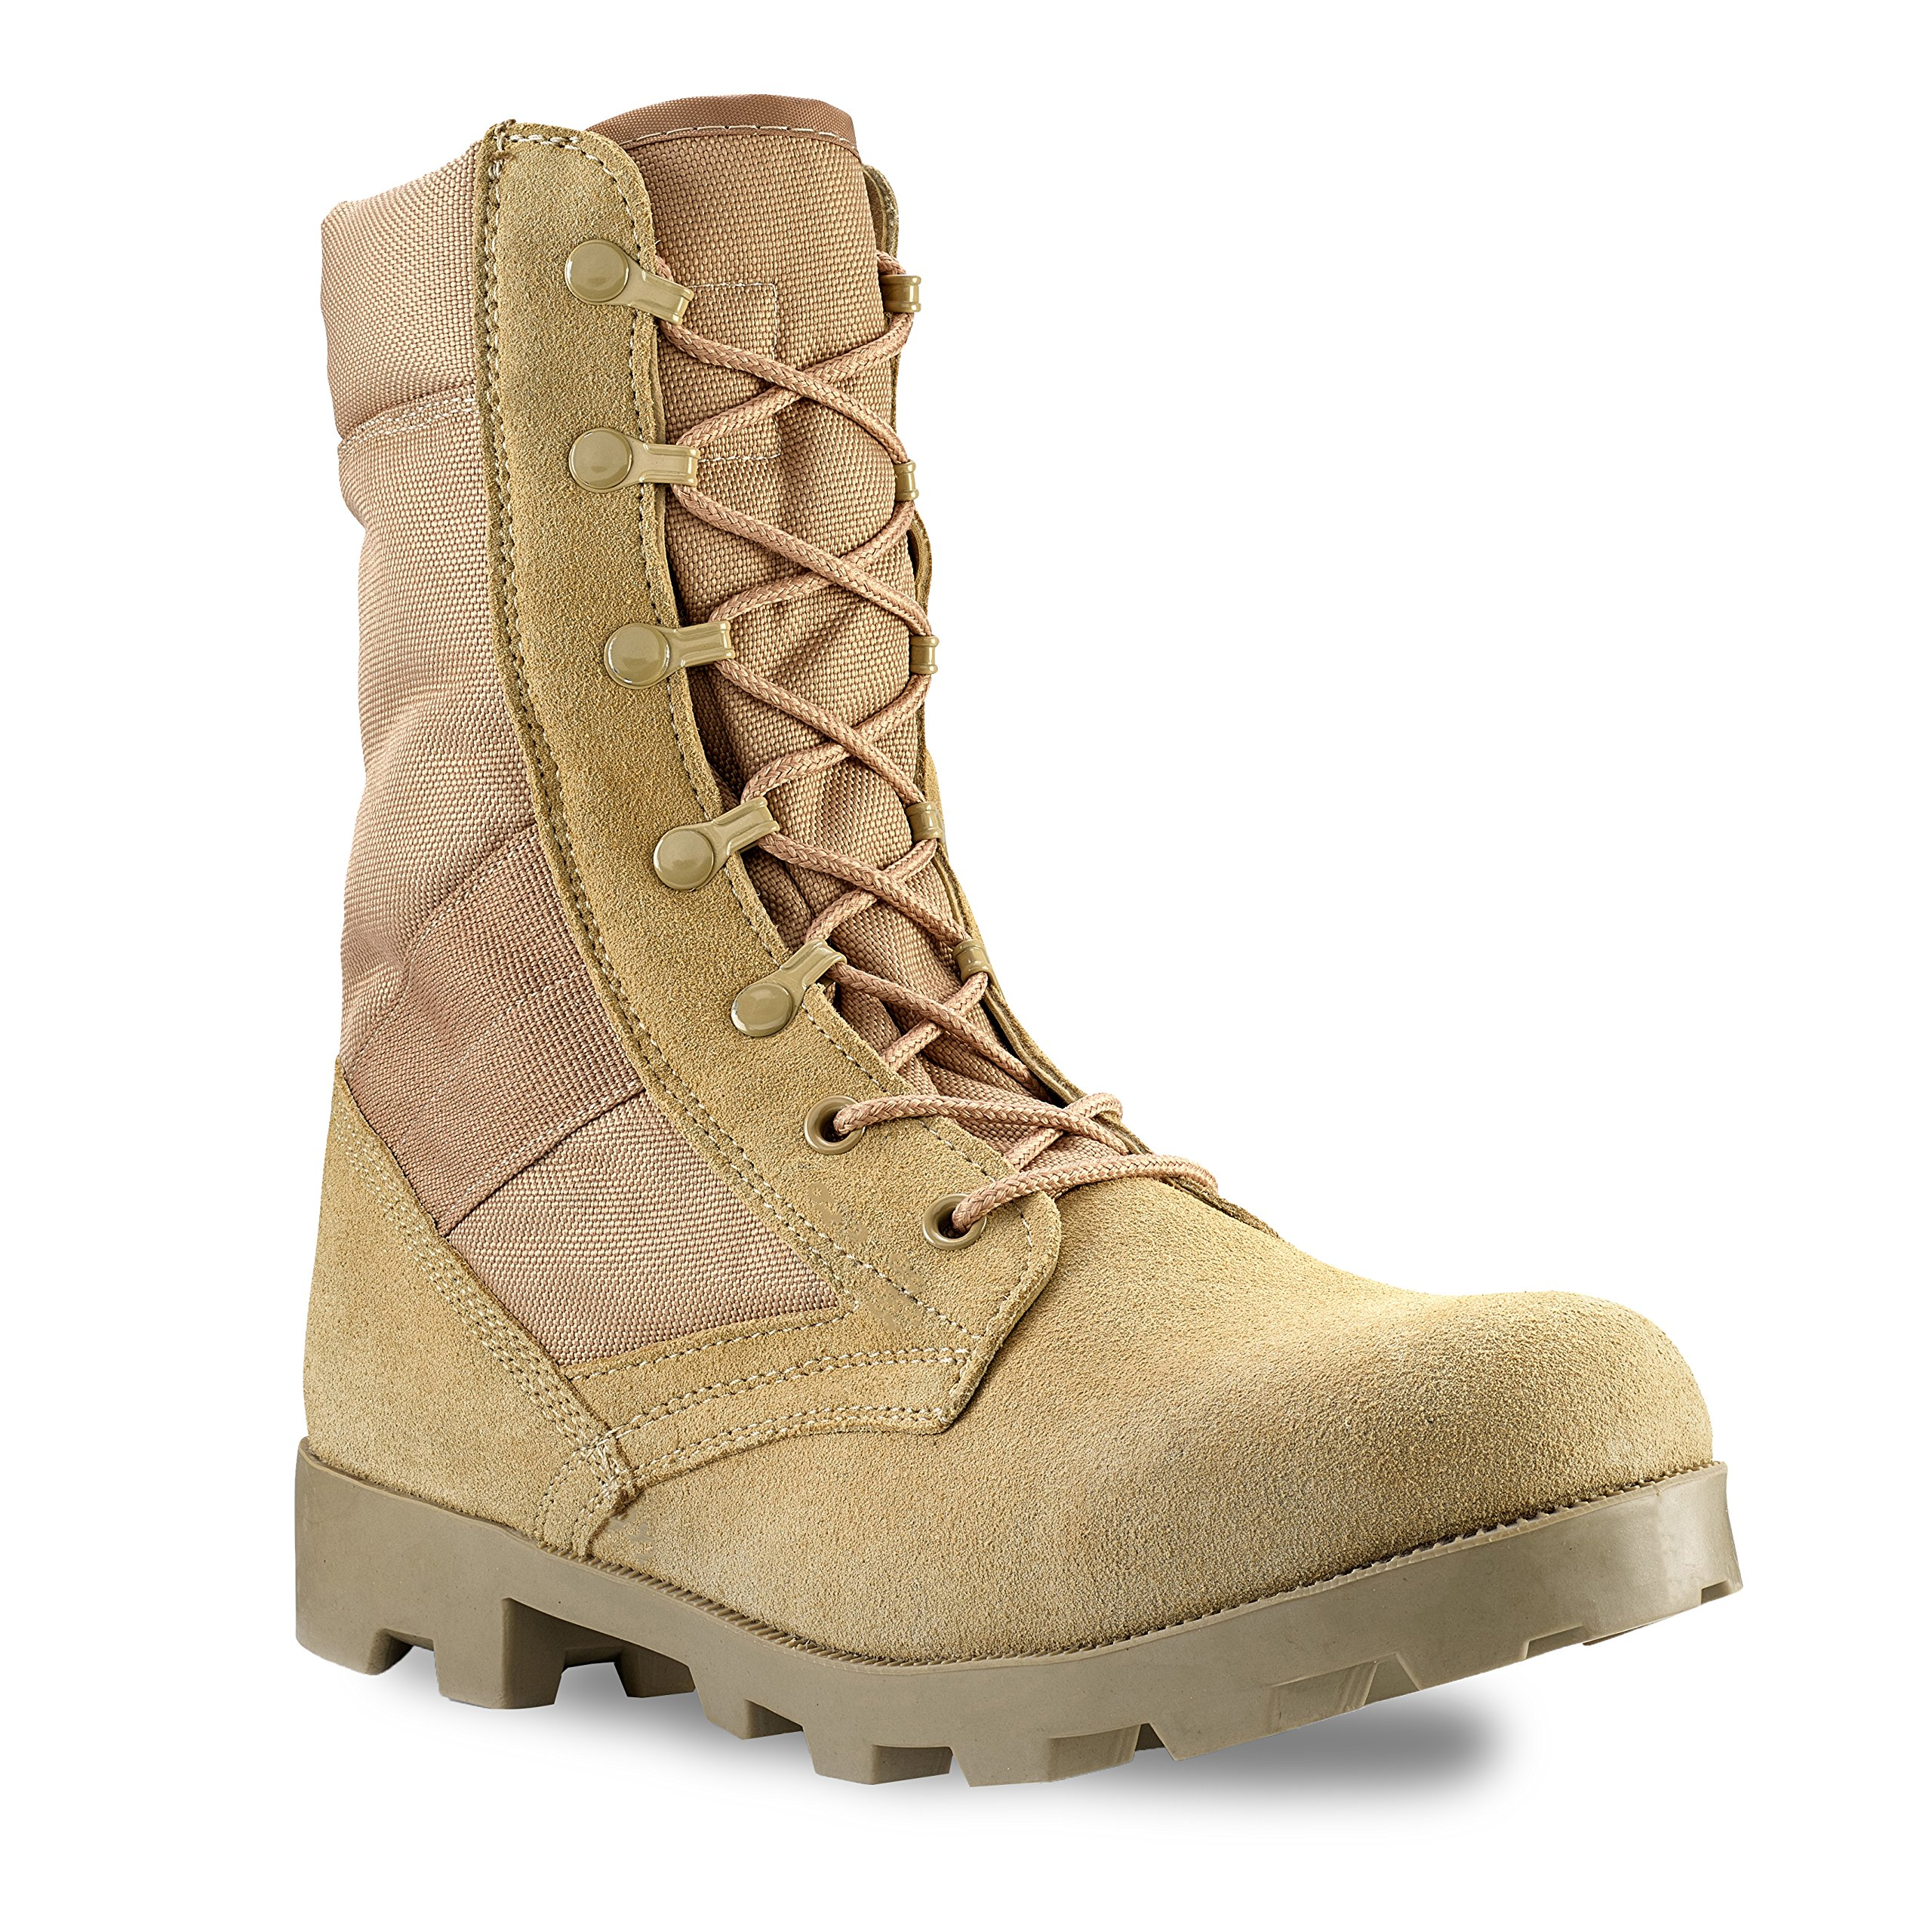 Men's 9 Inch Desert Tan Boots with Side Zipper for Work, Construction, Hiking, Hunting, Outdoors. Durable, Comfortable,True to Size. 6 Month Warranty by Buffer Zone